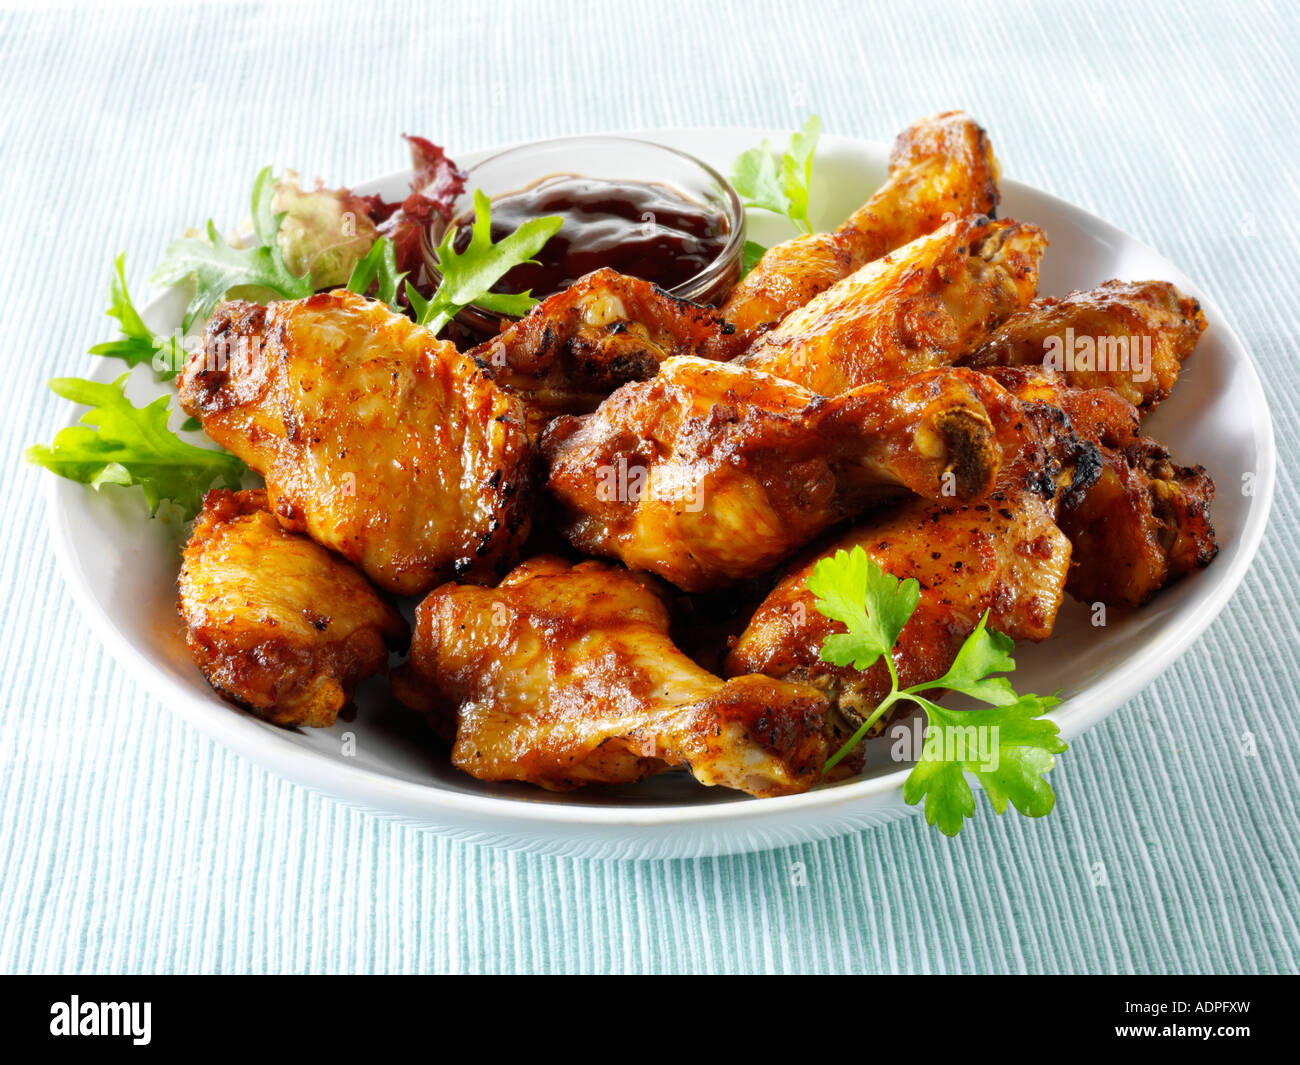 Bowl of spicy BBQ Chicken wings and thights - Stock Image